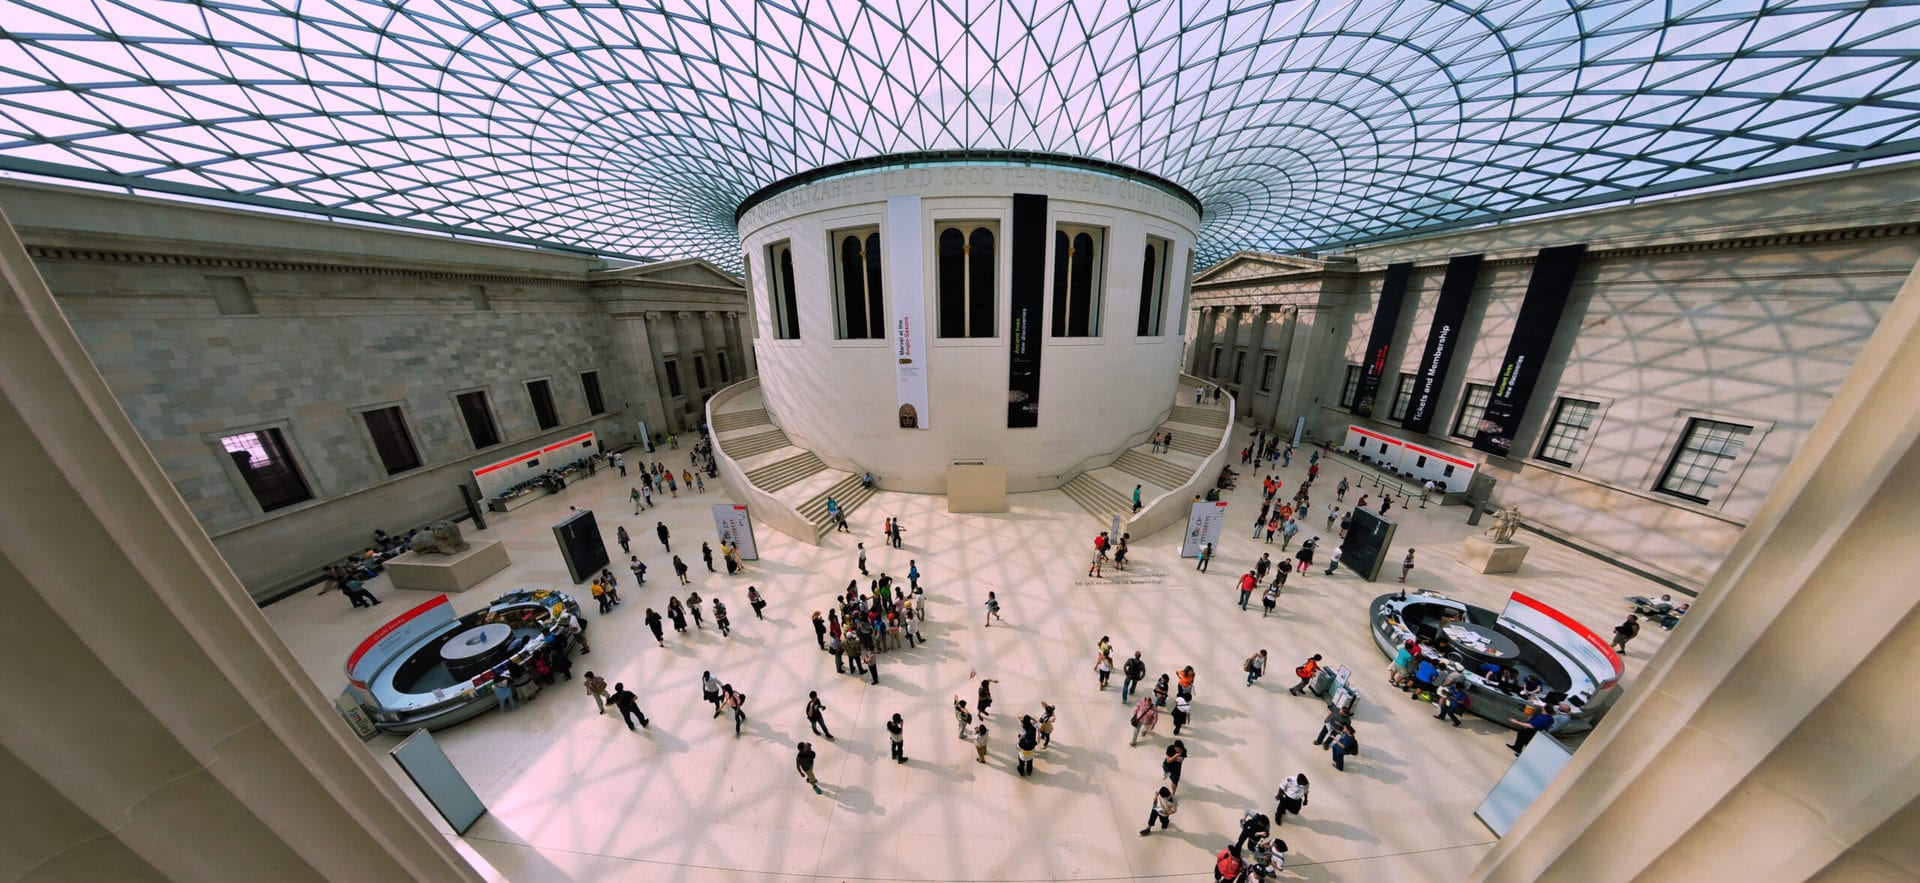 Studietur London British Museum pano